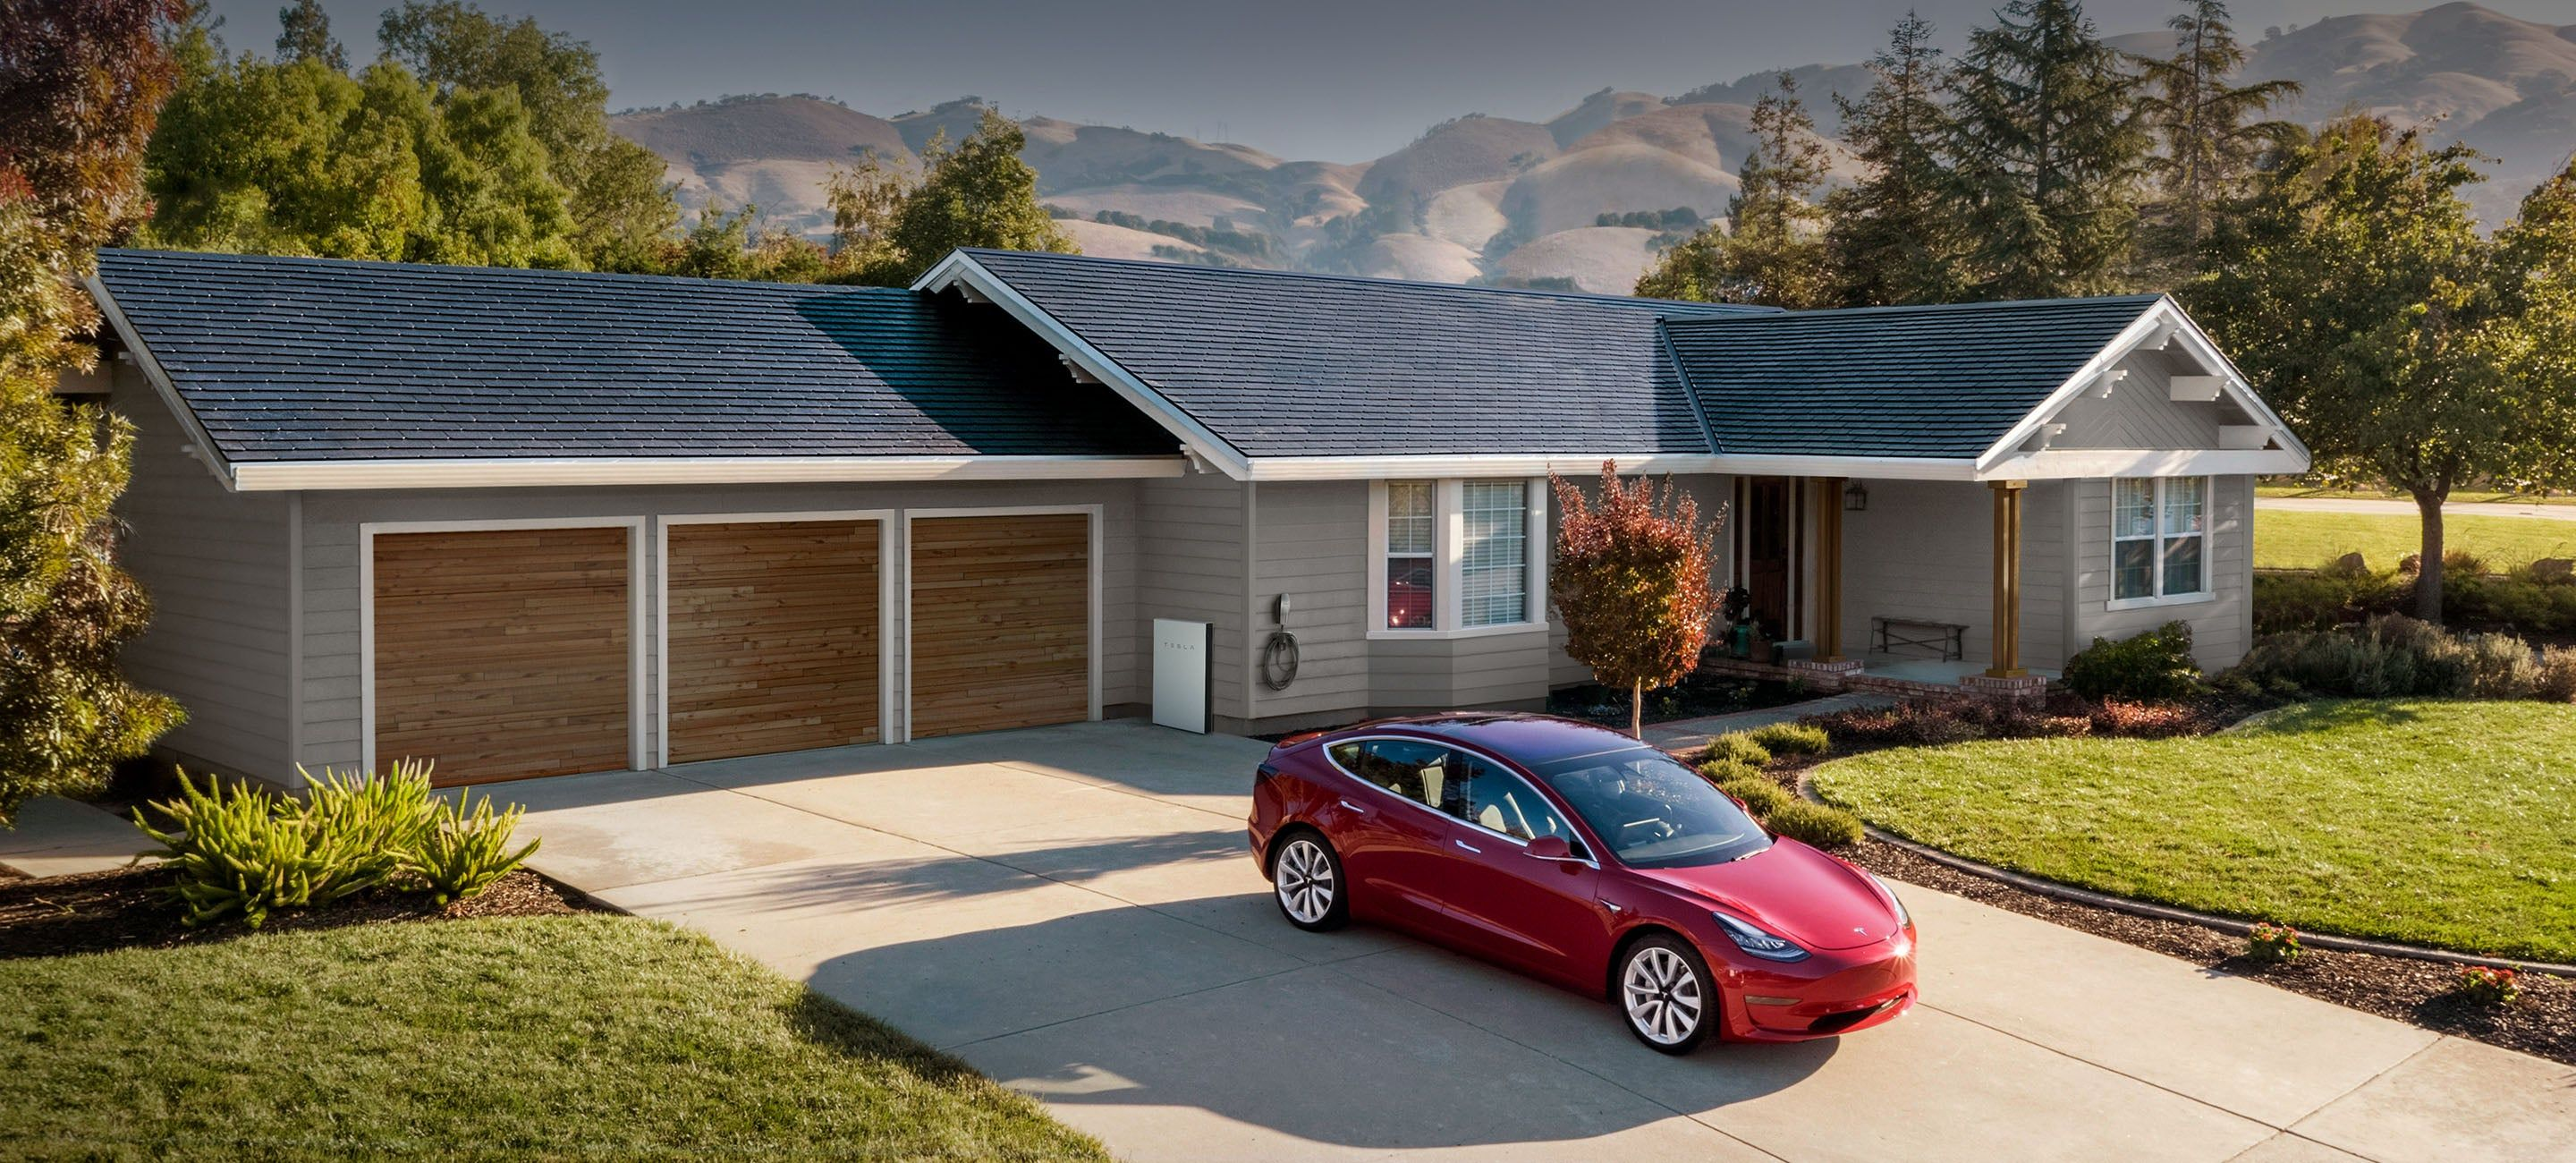 Why Tesla S Solar Roof Is A Bargain 53 Of The Price Of A Roof Electricity Cleantechnica Analysis Tesla Solar Roof Solar Panels Roof Solar Shingles